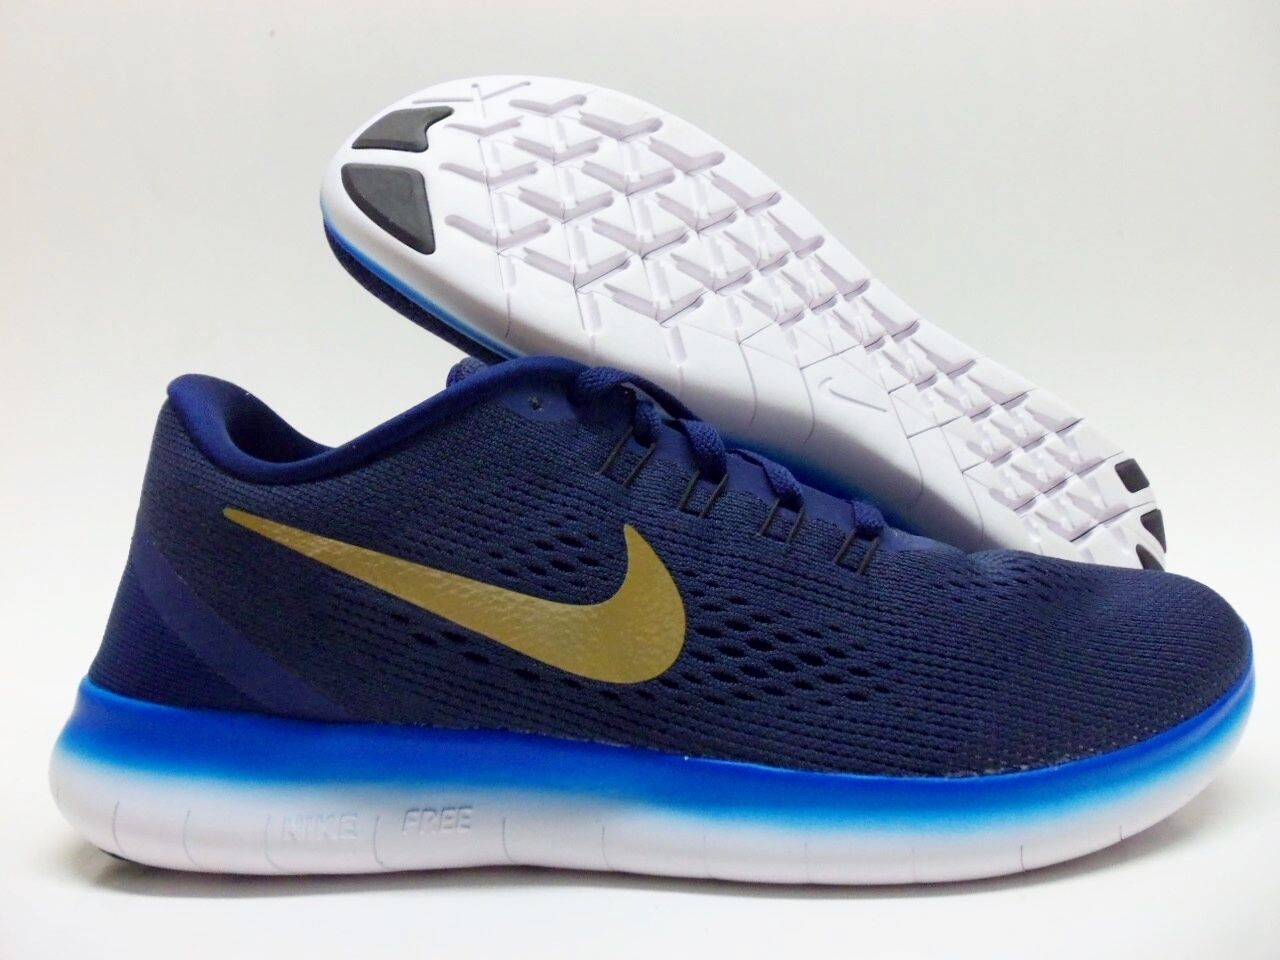 NIKE FREE RUN ID TRAINER MIDNIGHT NAVY/GOLD SIZE WOMEN'S 8.5 [857742-991]